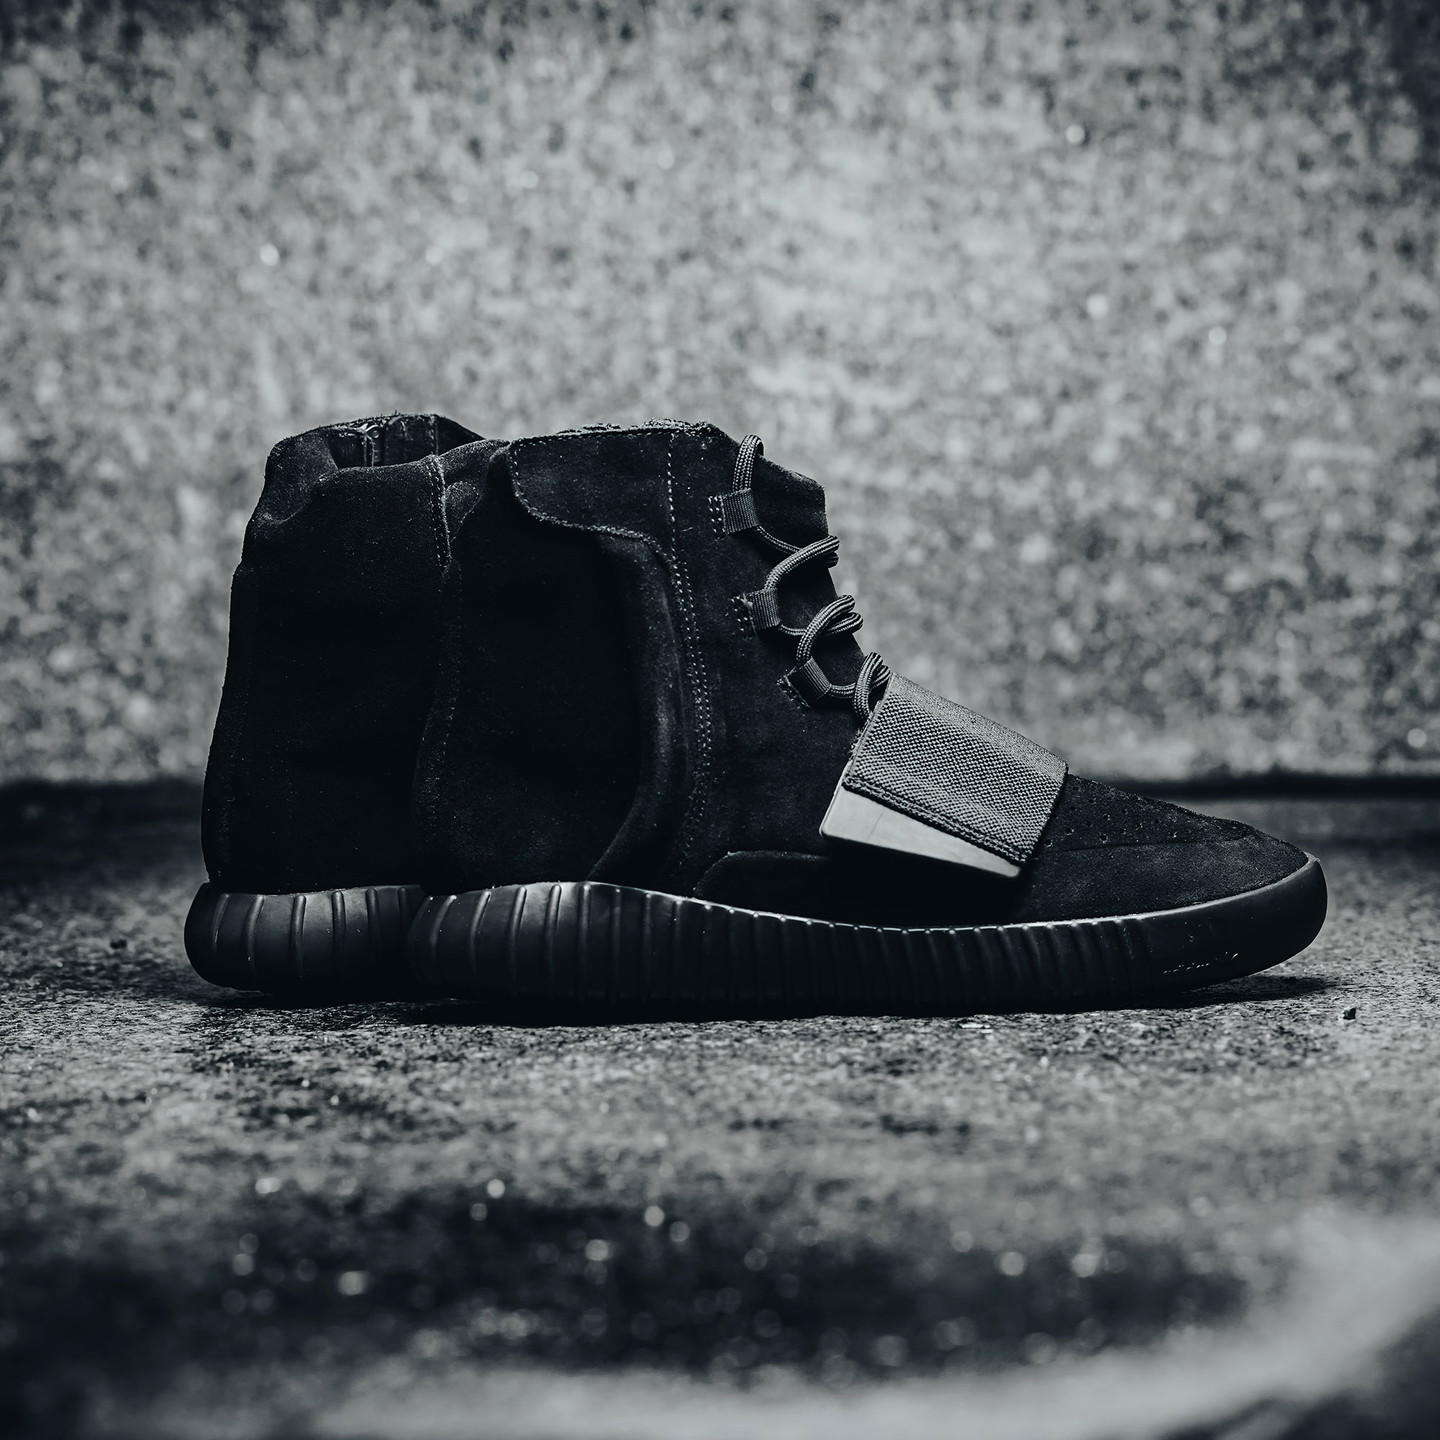 Adidas Yeezy Boost 750 Triple Black BB1839